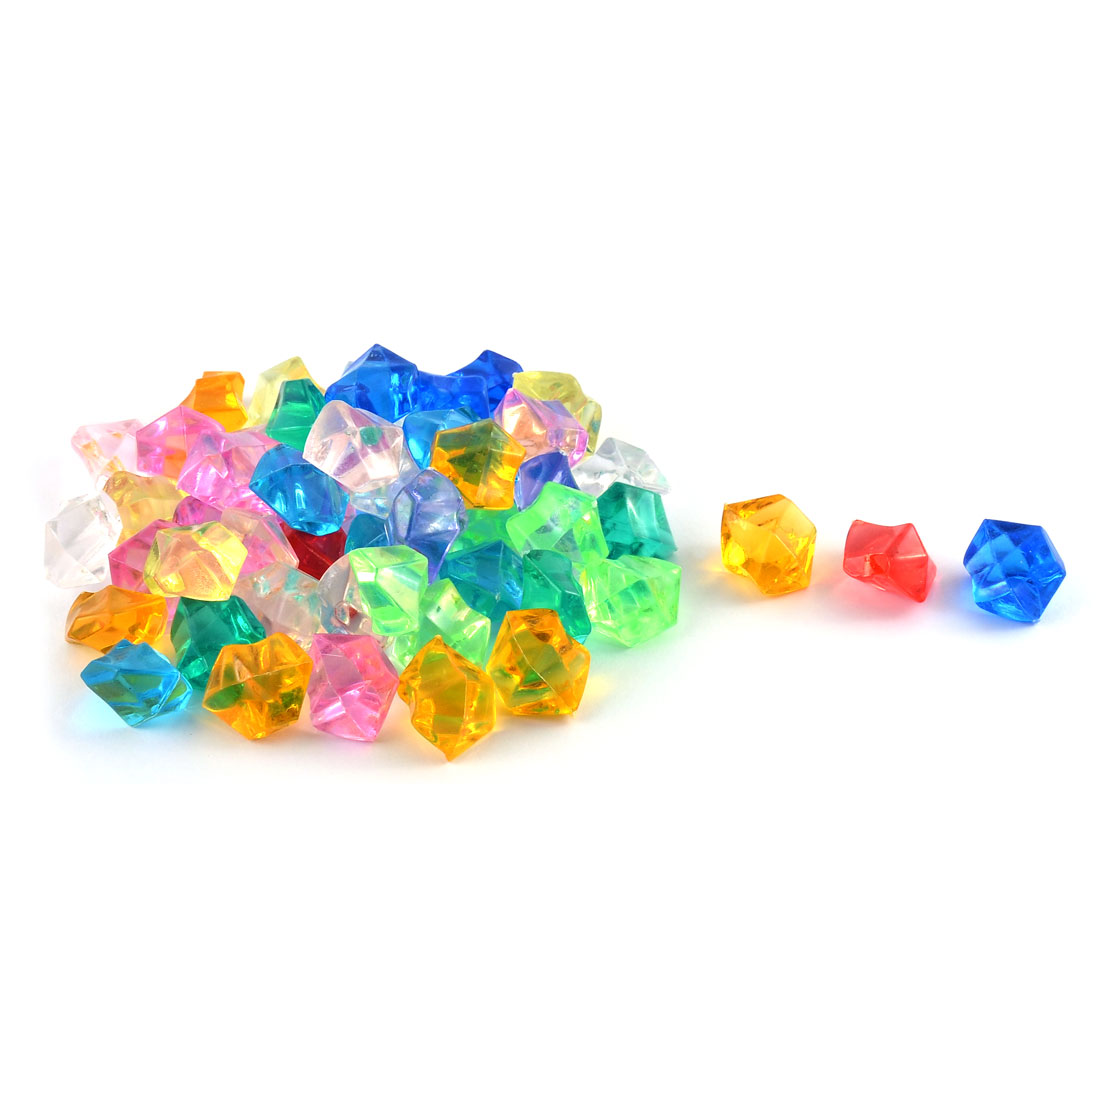 Fish Tank Plastic Assorted Color Manmade Crystal Aquarium Glass Stones Assorted Color 53pcs